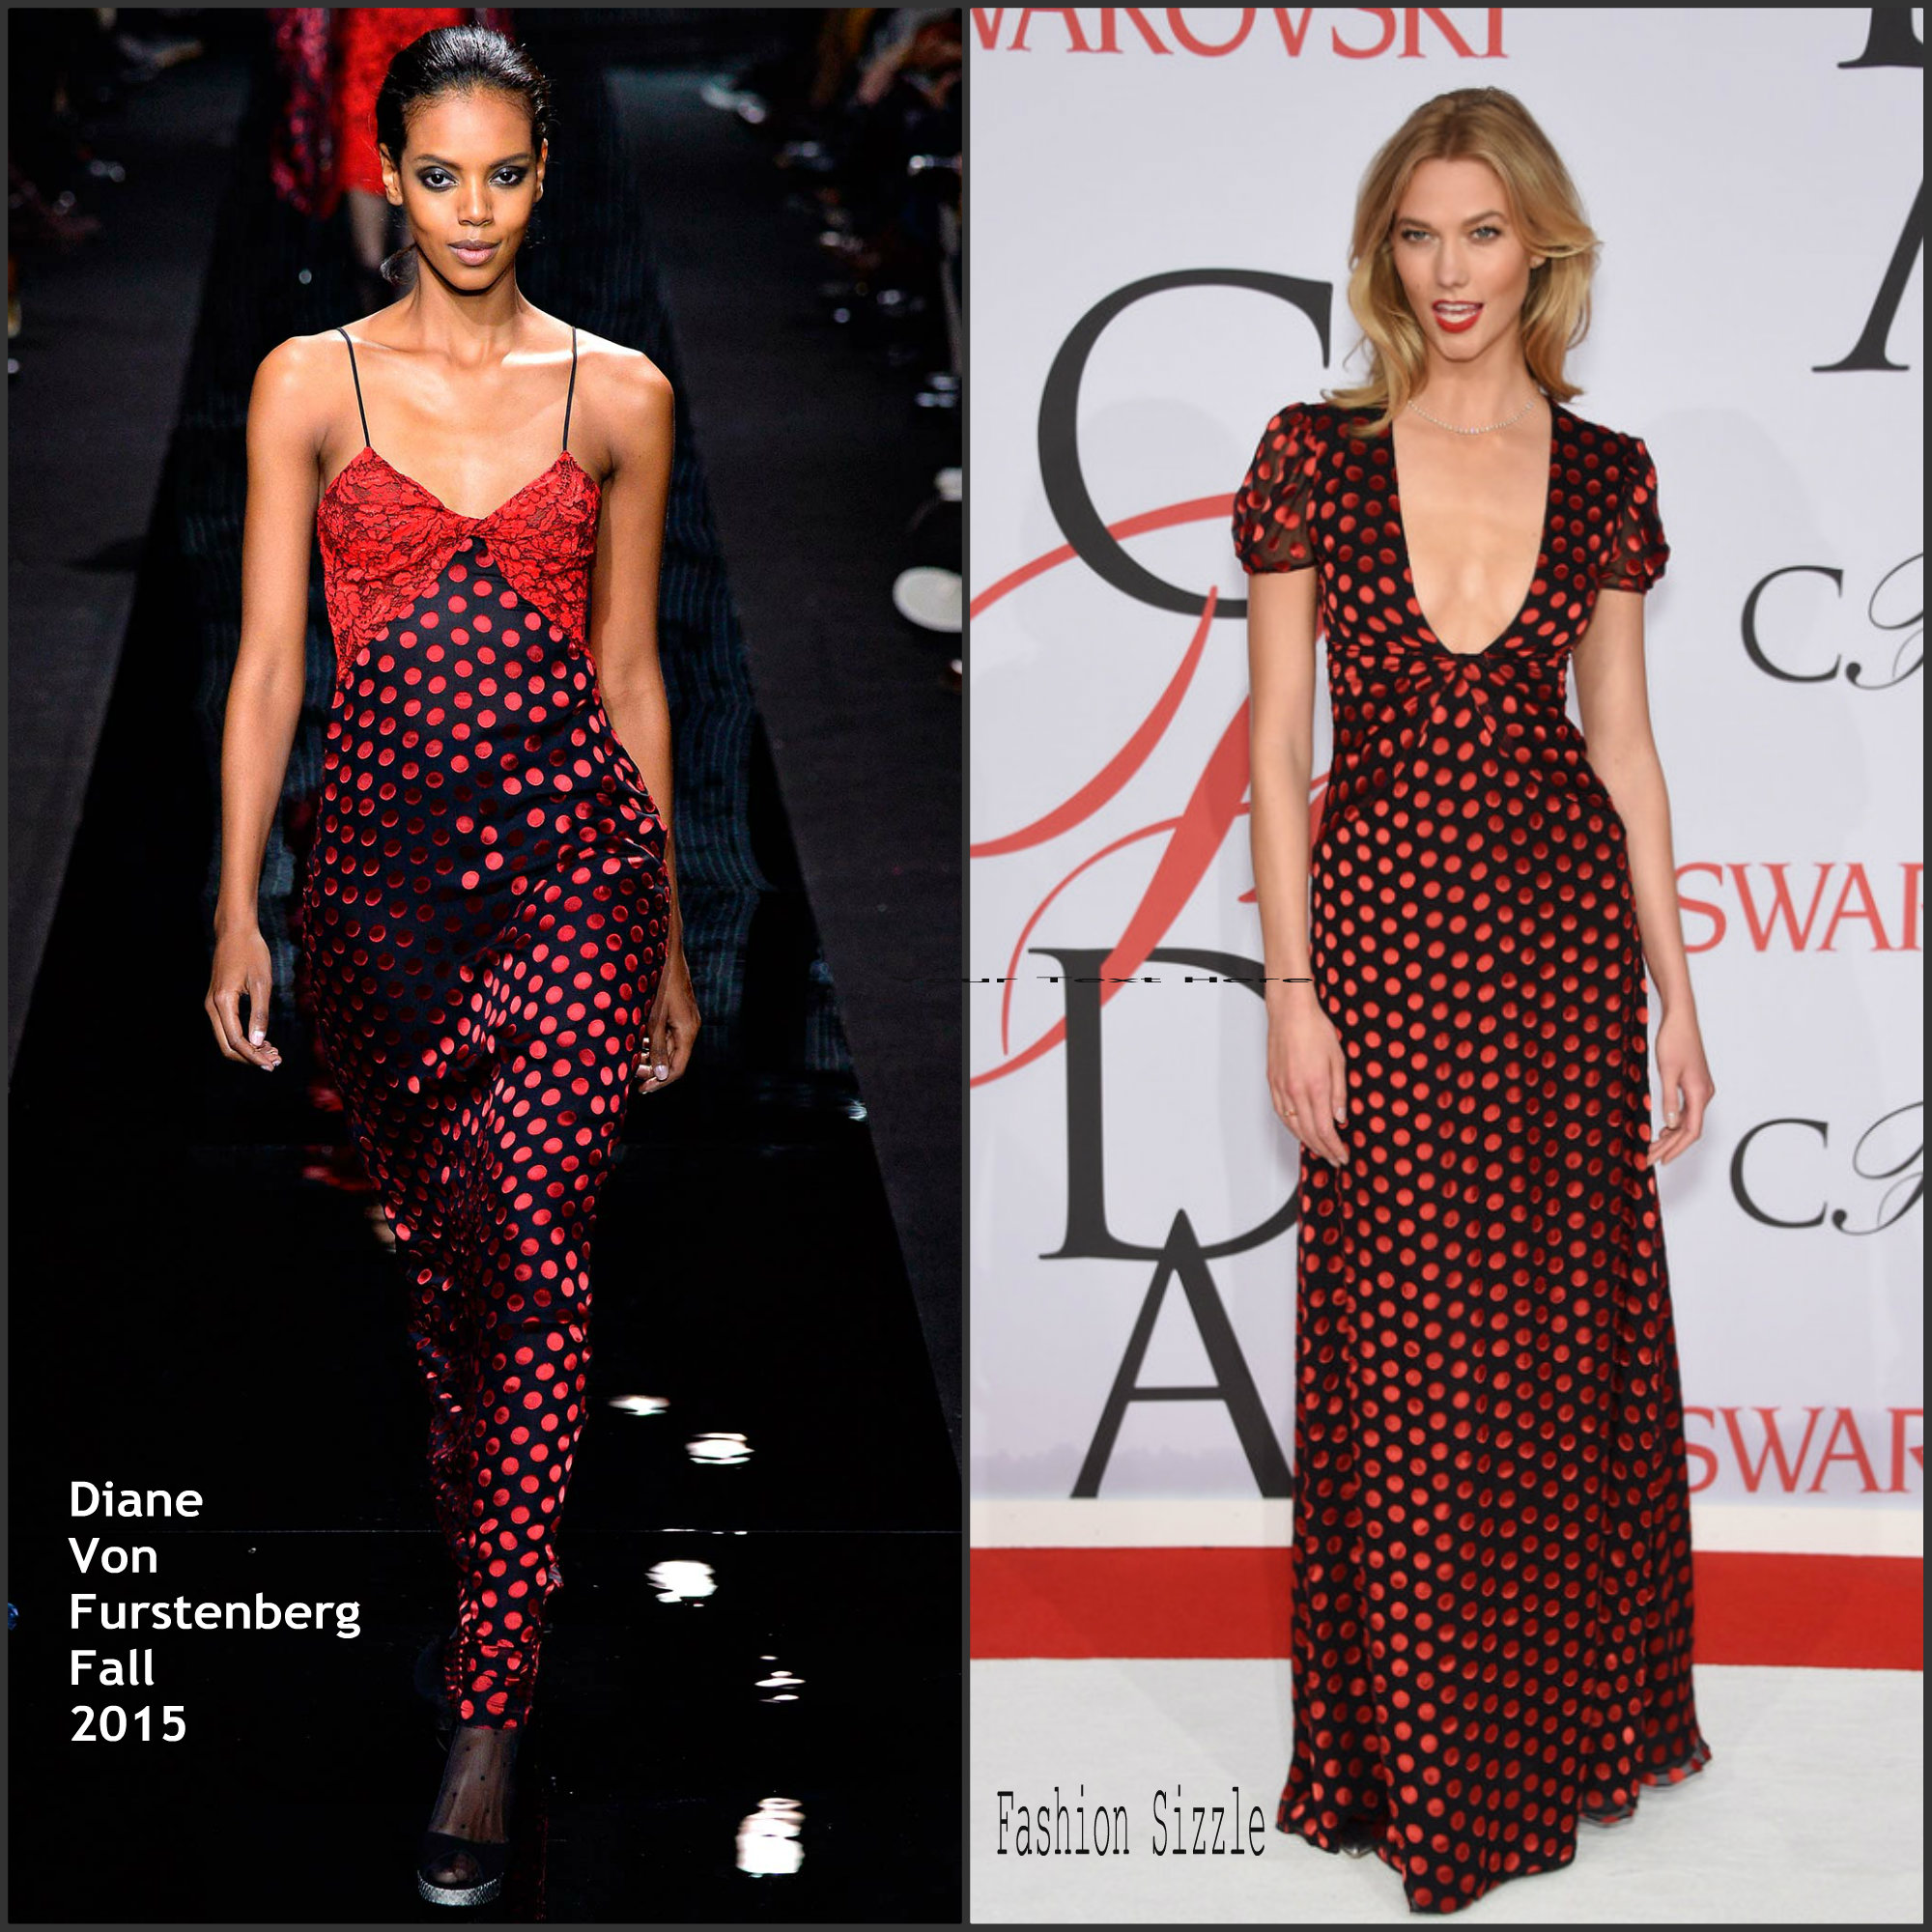 karlie-kloss-in-diane-von-furstenberg-2015-cfda-fashion-awards